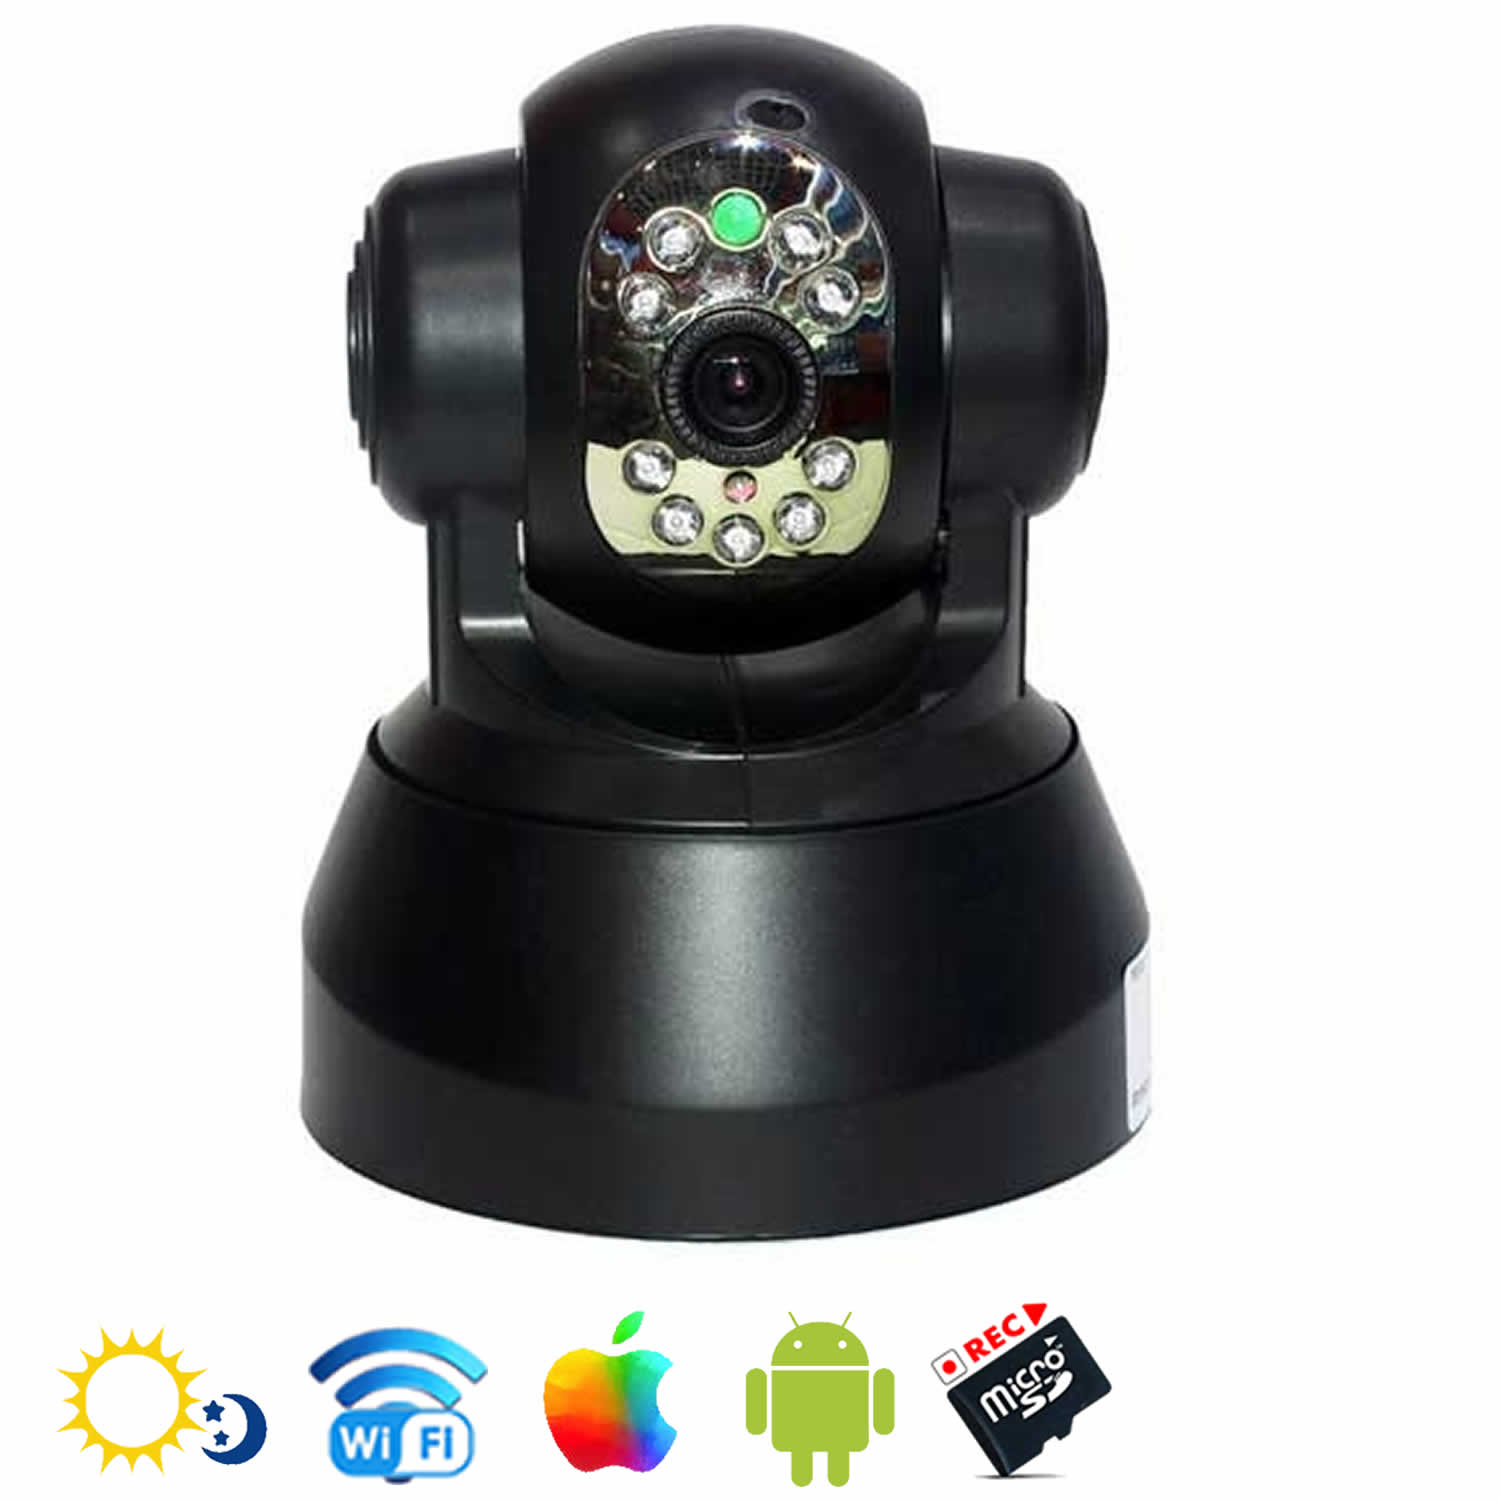 camera ip plug and play wifi motorisee. Black Bedroom Furniture Sets. Home Design Ideas